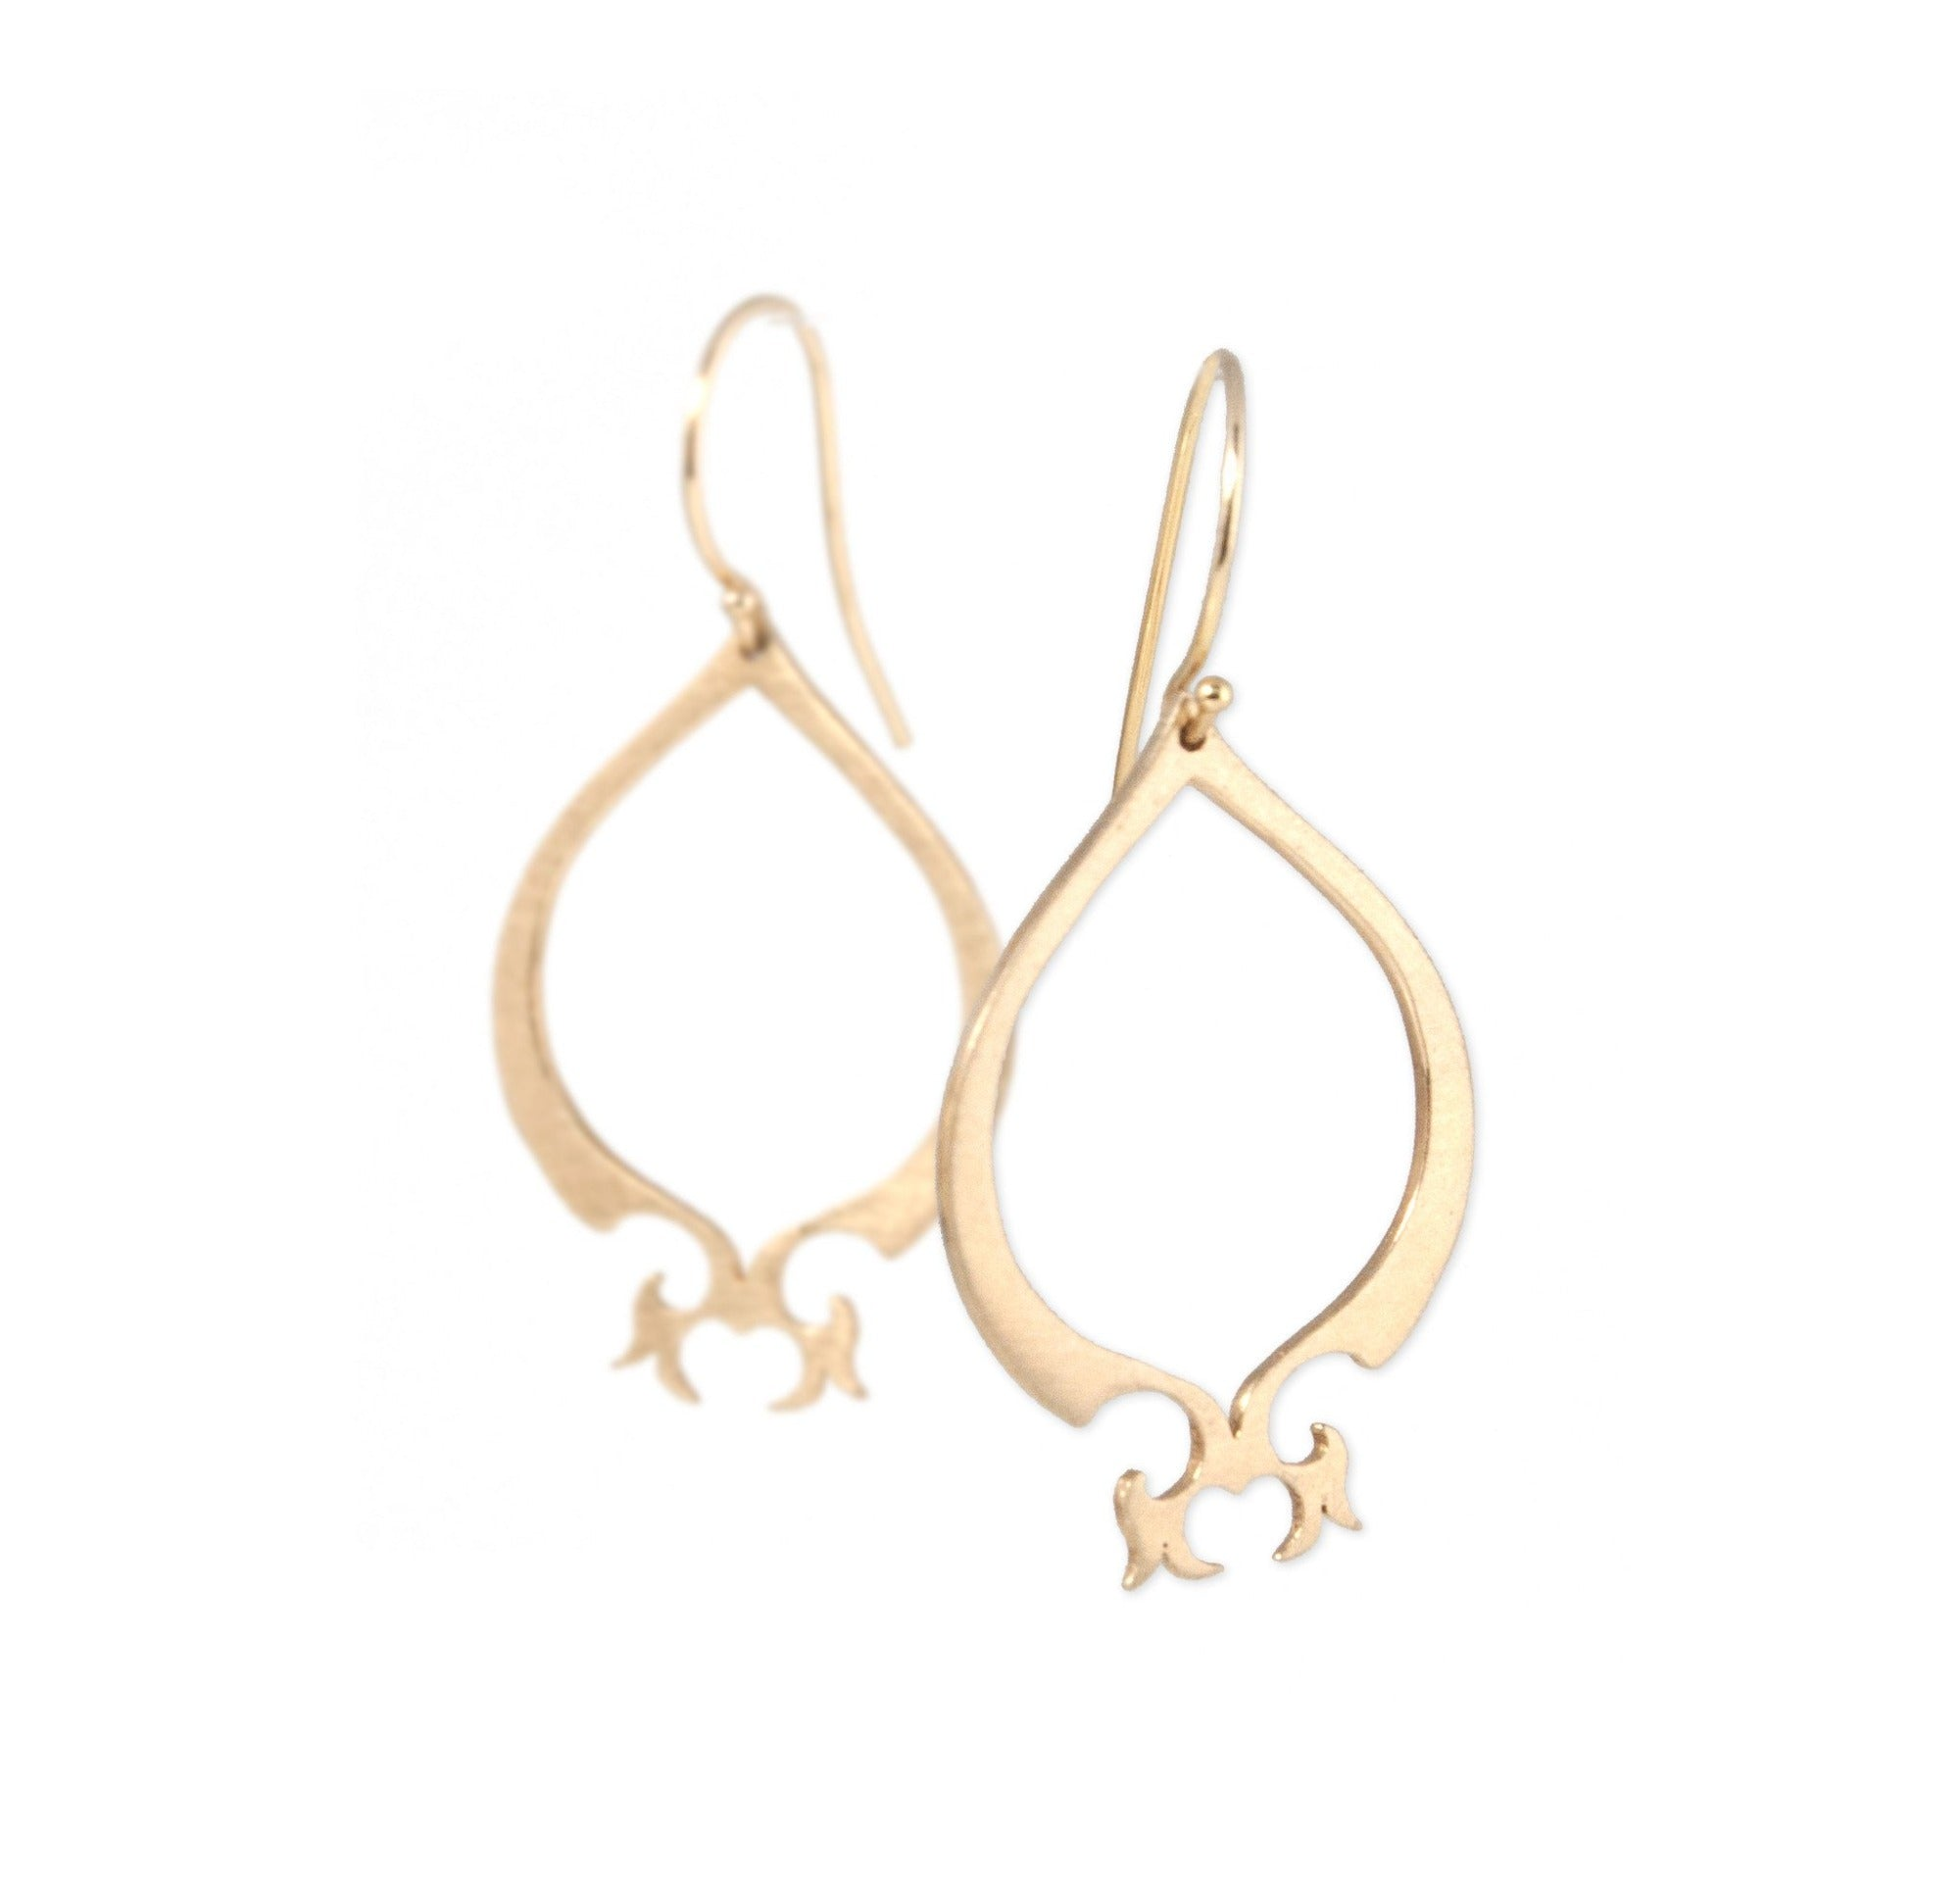 14k yellow gold arabesque teardrop earrings